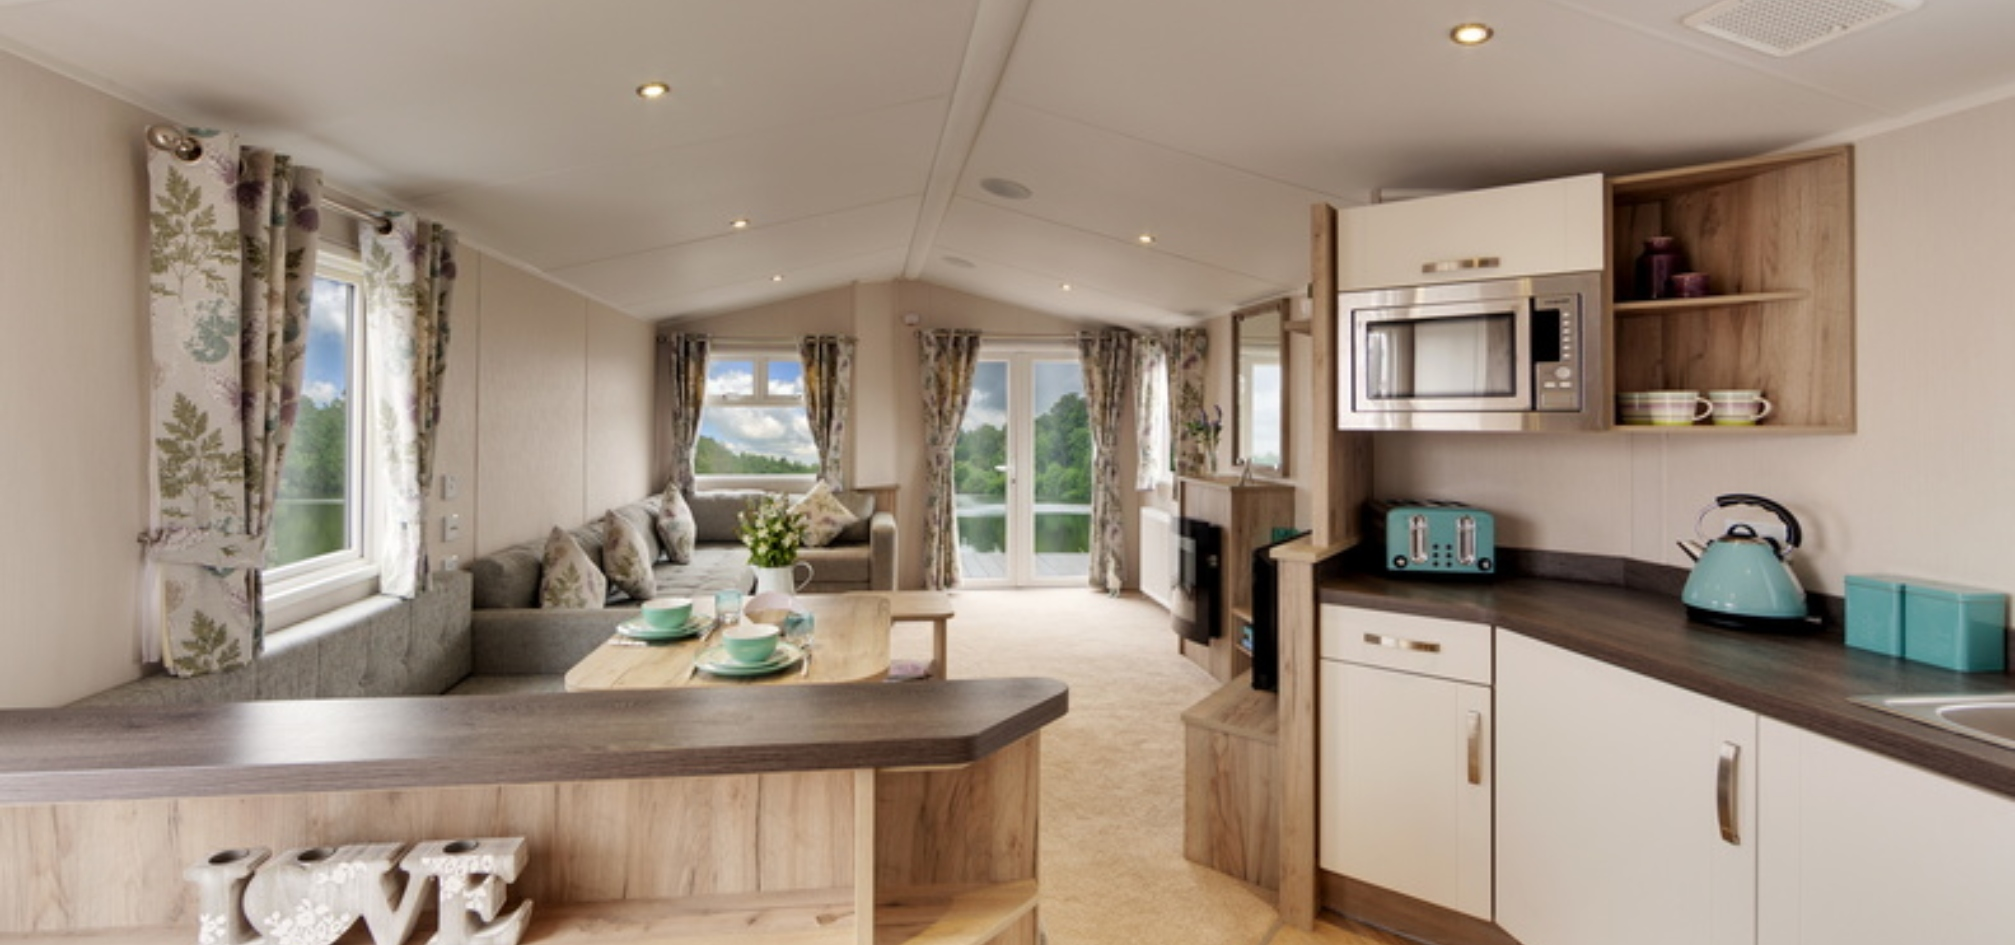 Open plan holiday home with kitchen, dining table and living room all in one large space, beautifully furnished